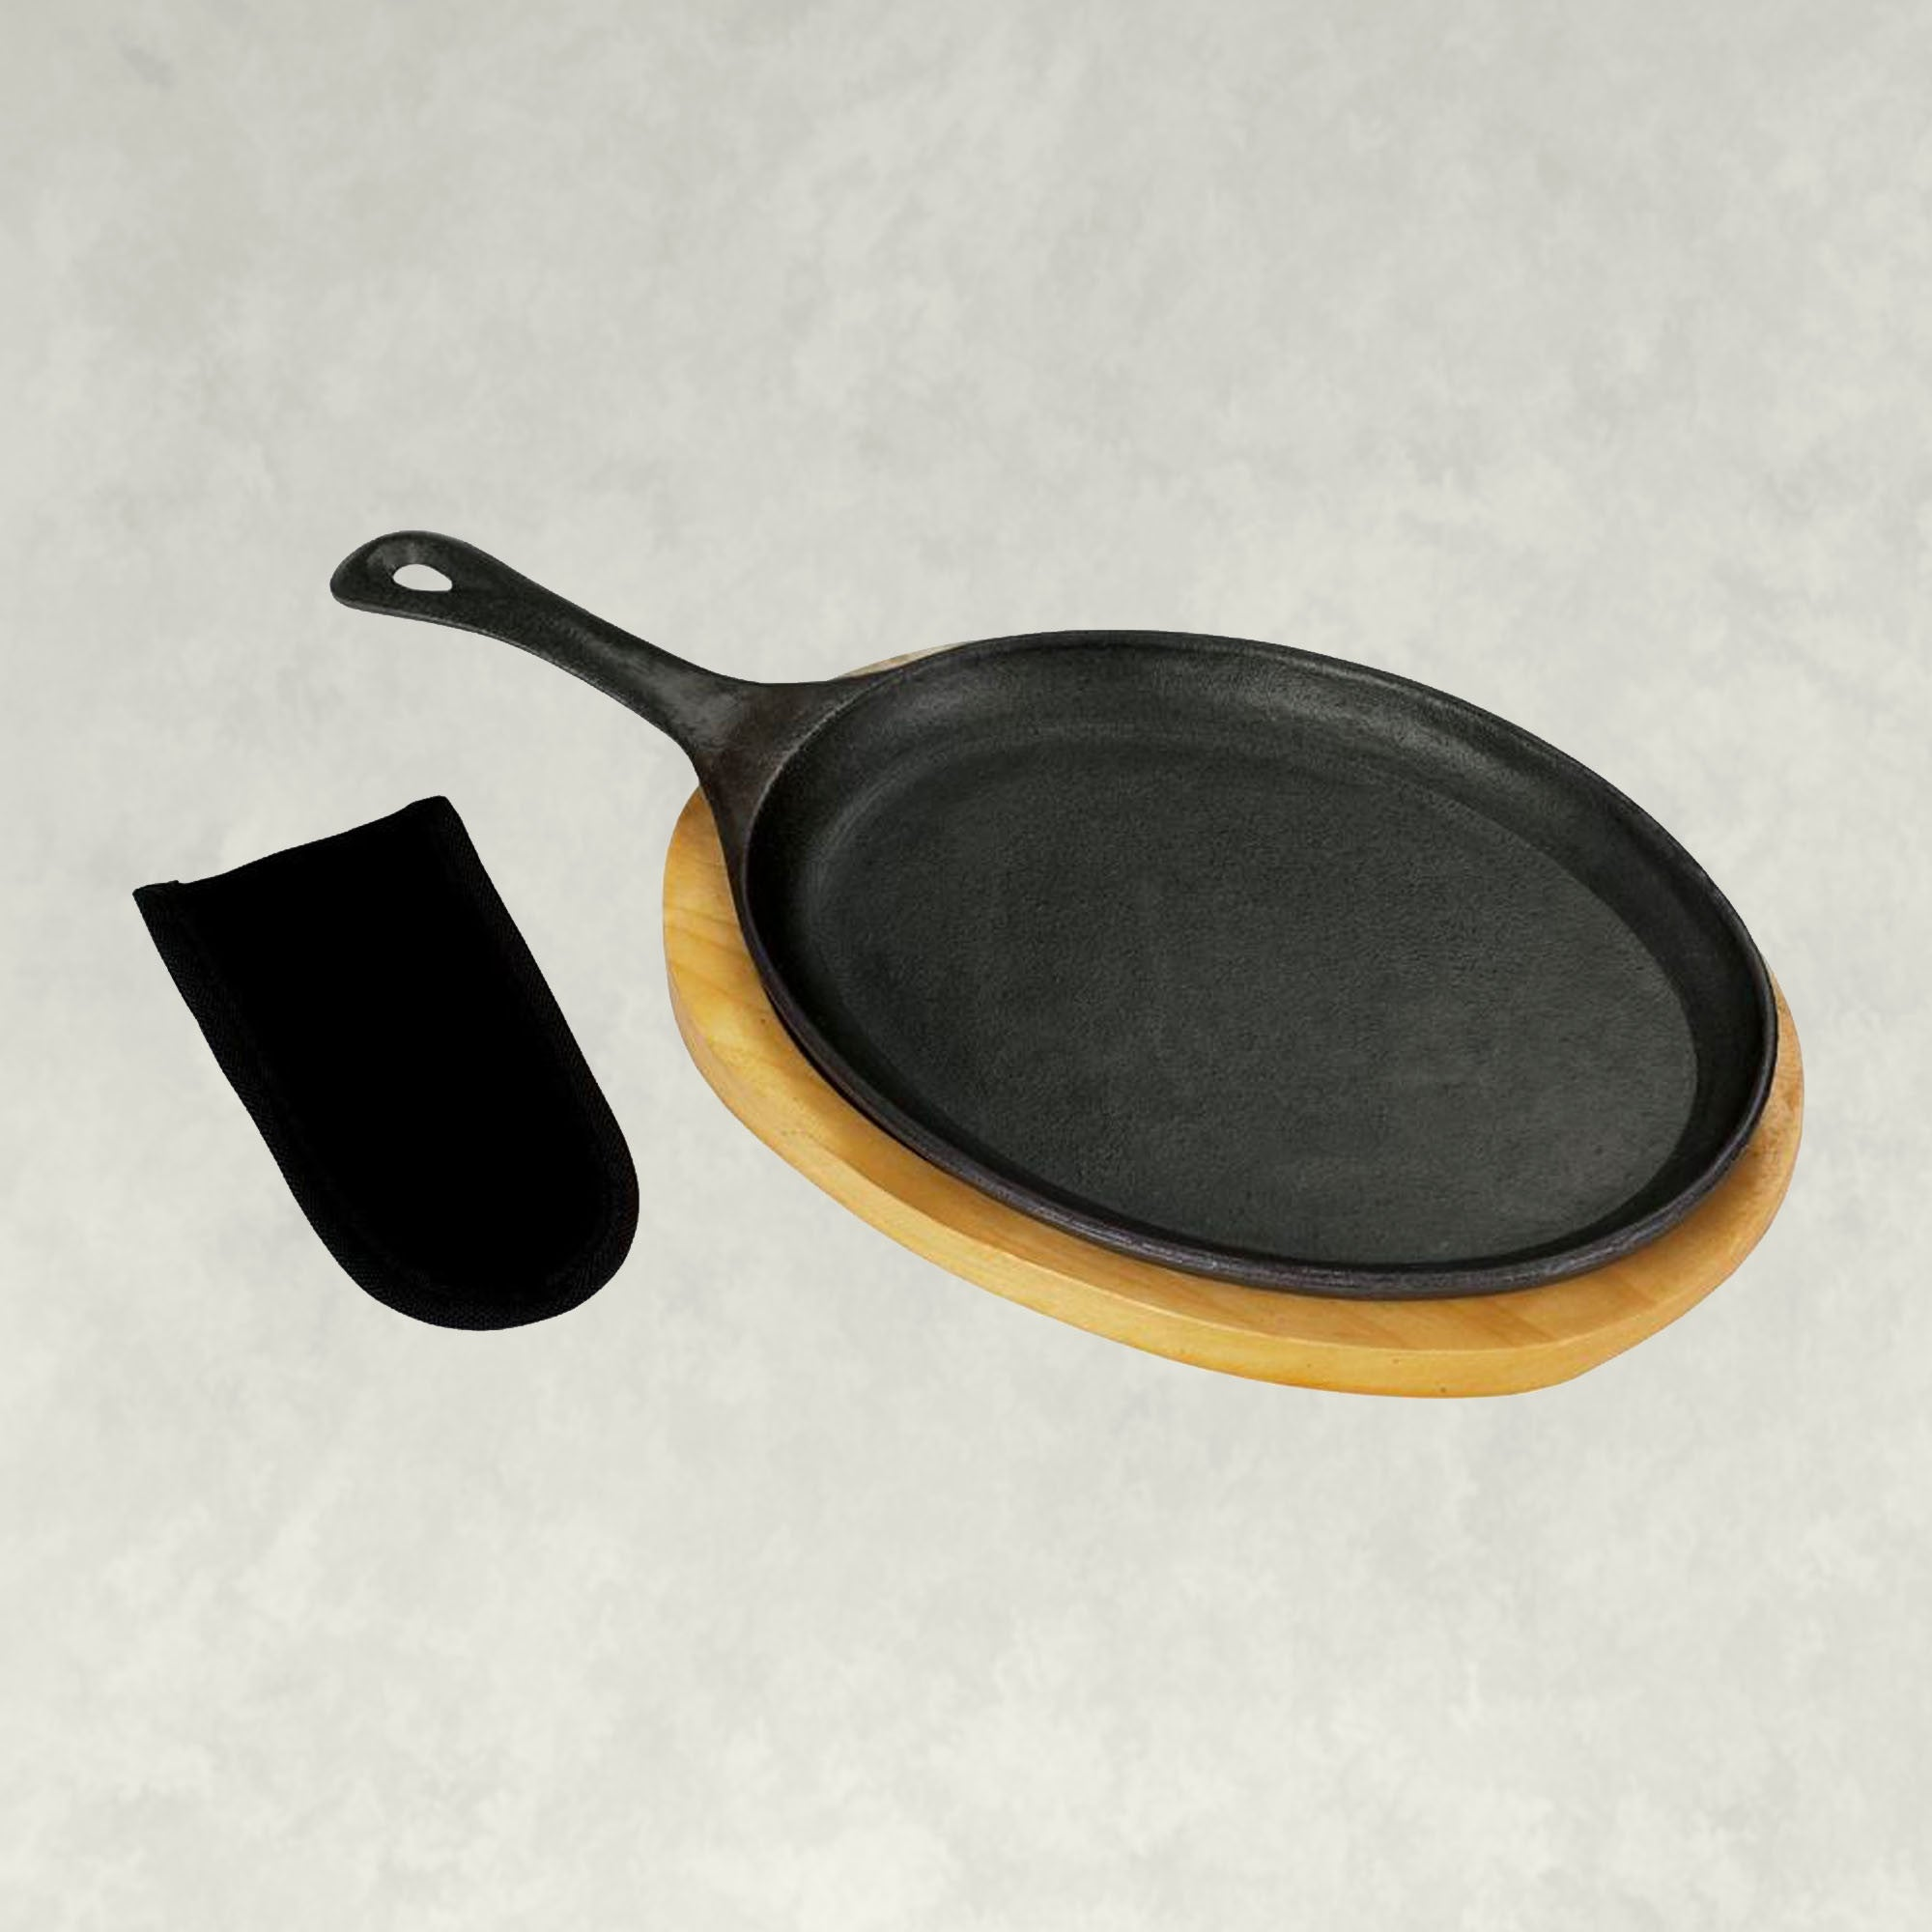 Fajita Pan with Trivet